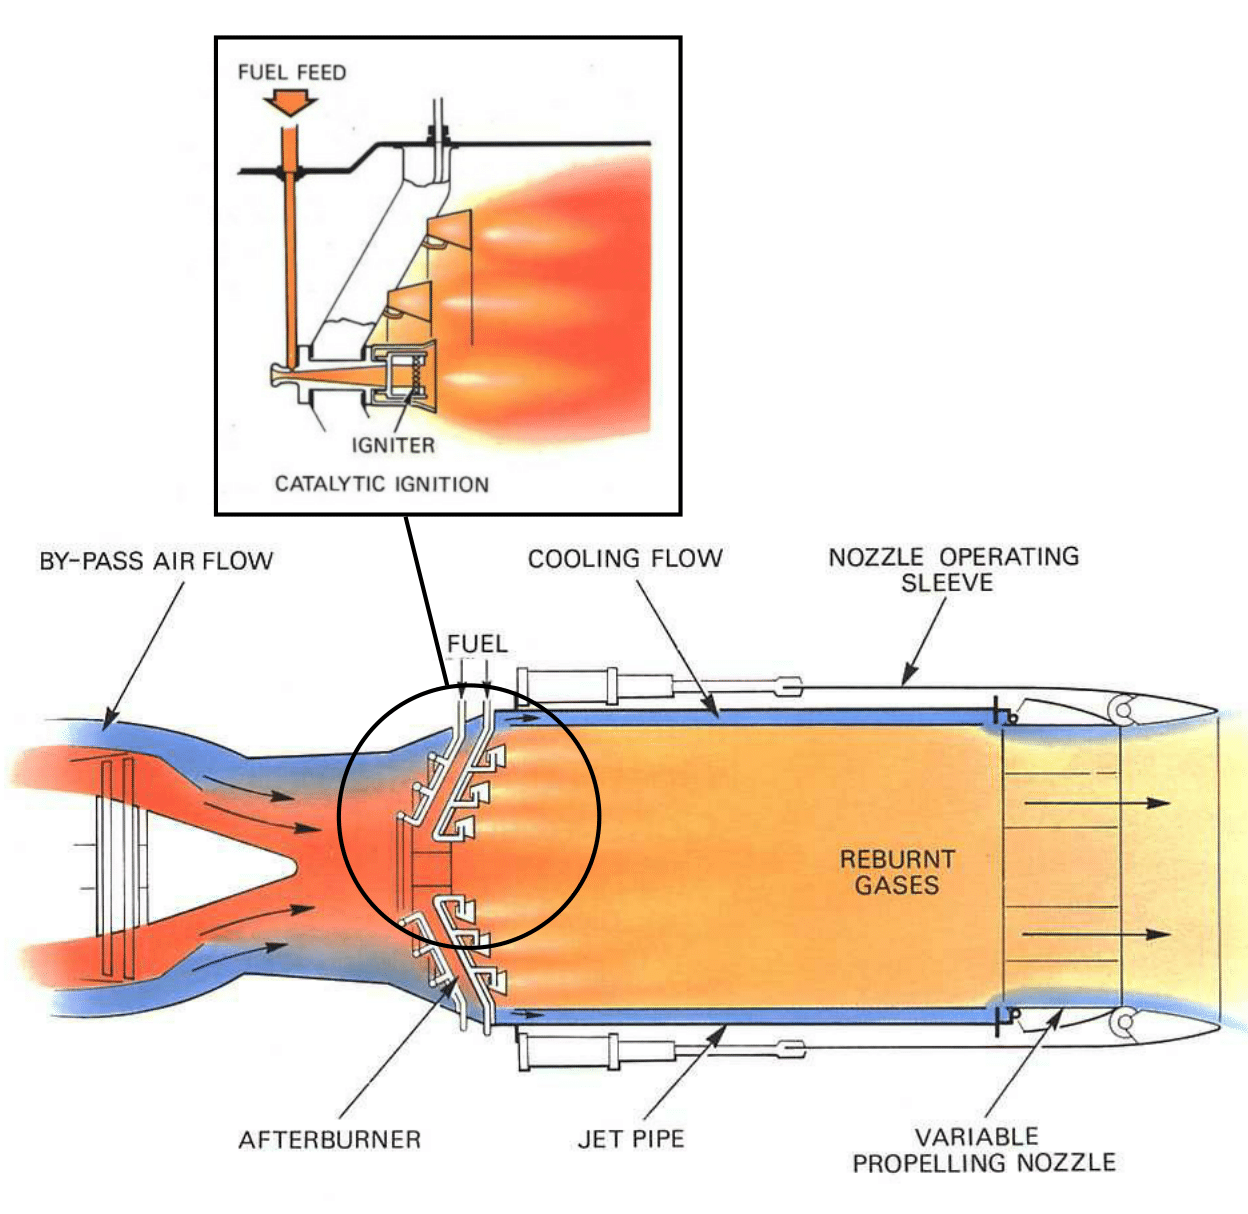 Jet engine design afterburning aerospace engineering blog schematic of afterburning components and functionality at the tail end of a jet engine 1 pooptronica Gallery